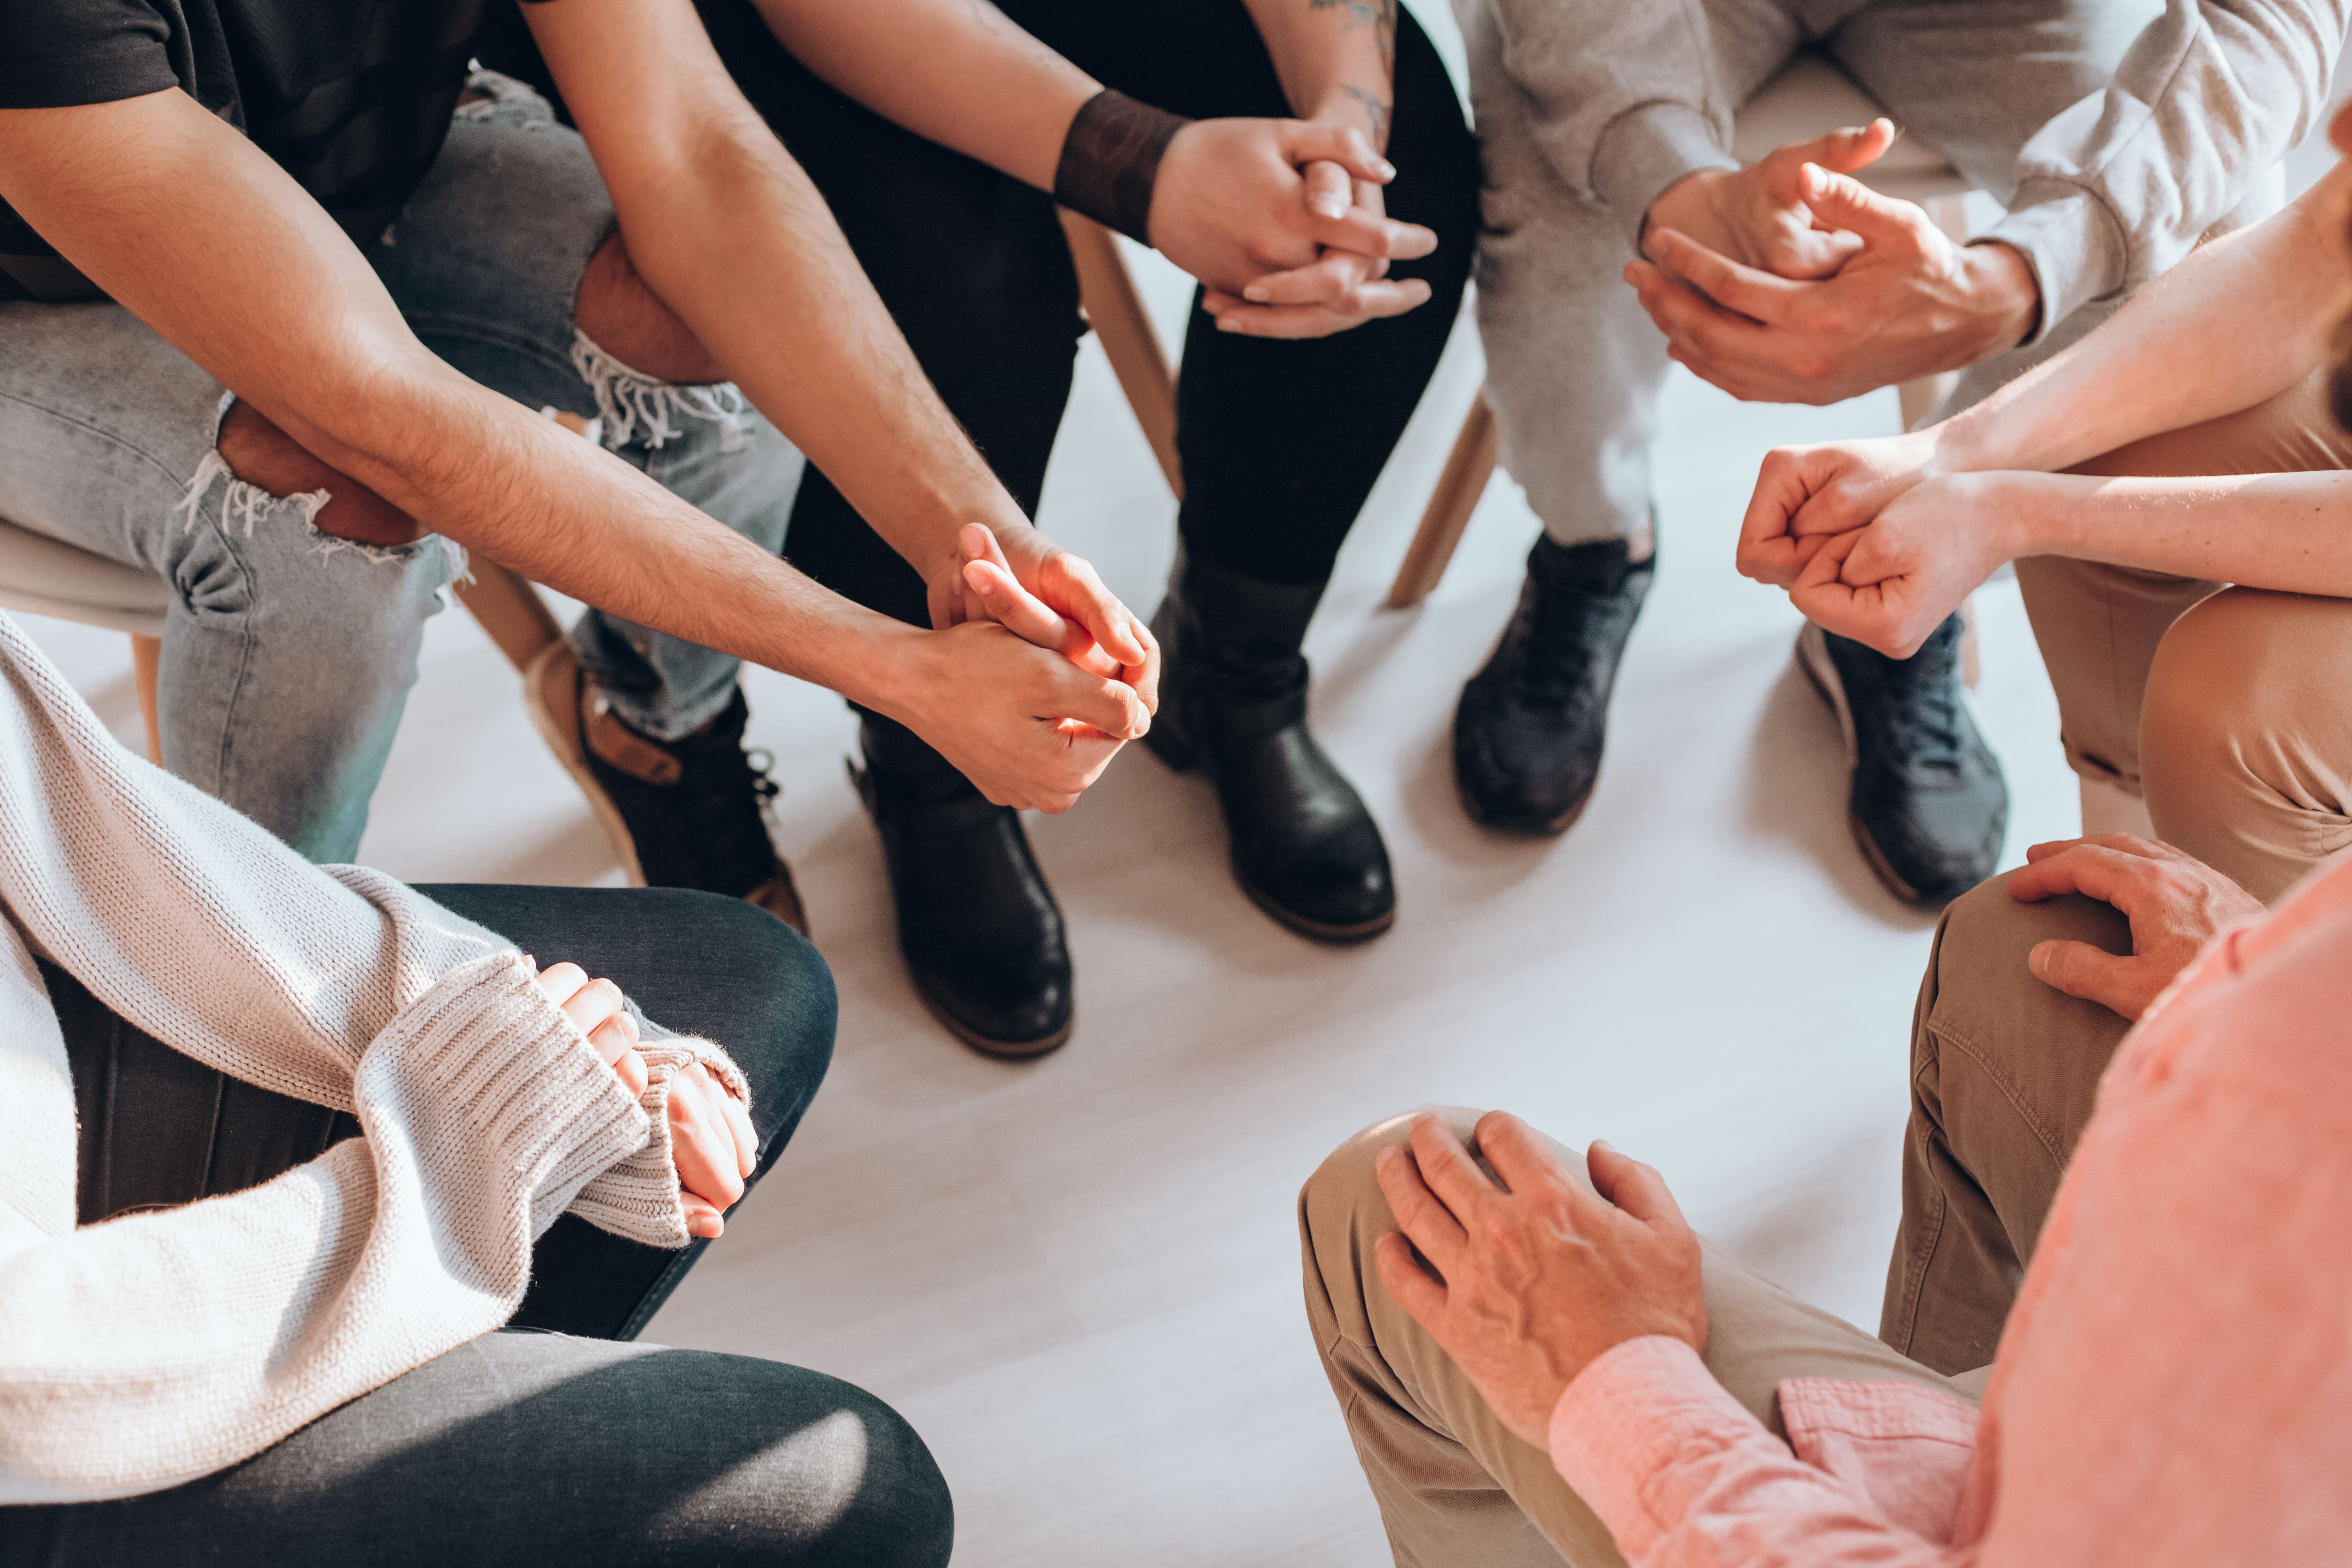 Support Group with Hands Together